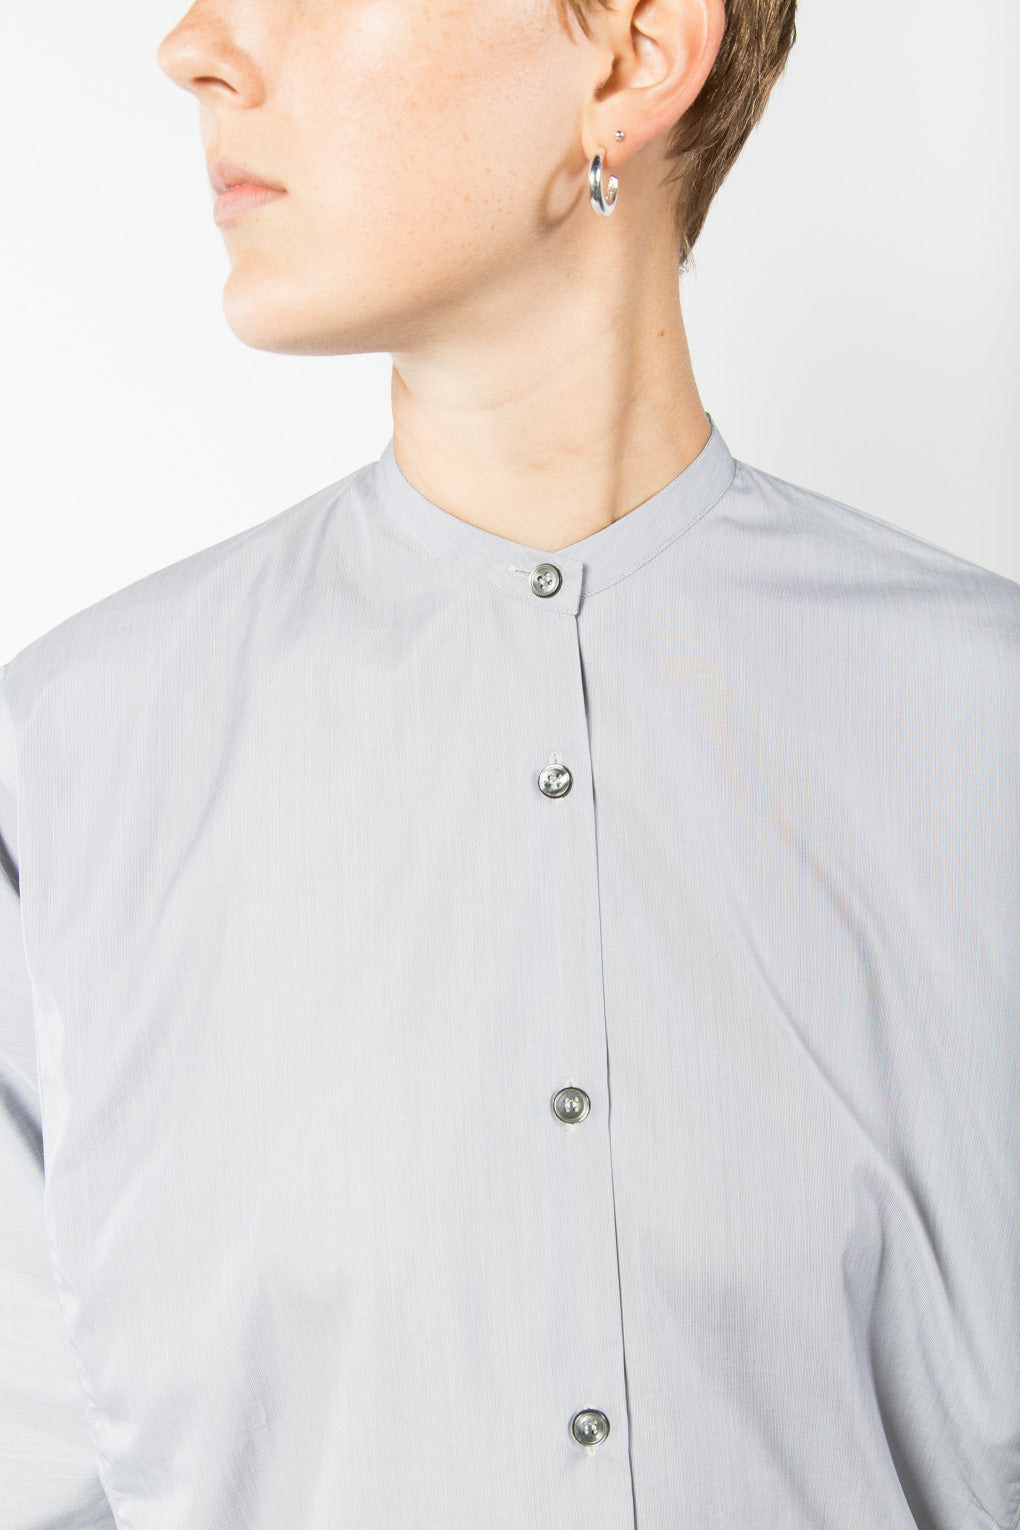 Studio Nicholson Teddy Shirt-Light Blue Top-Tunic-Idun-Saint Paul